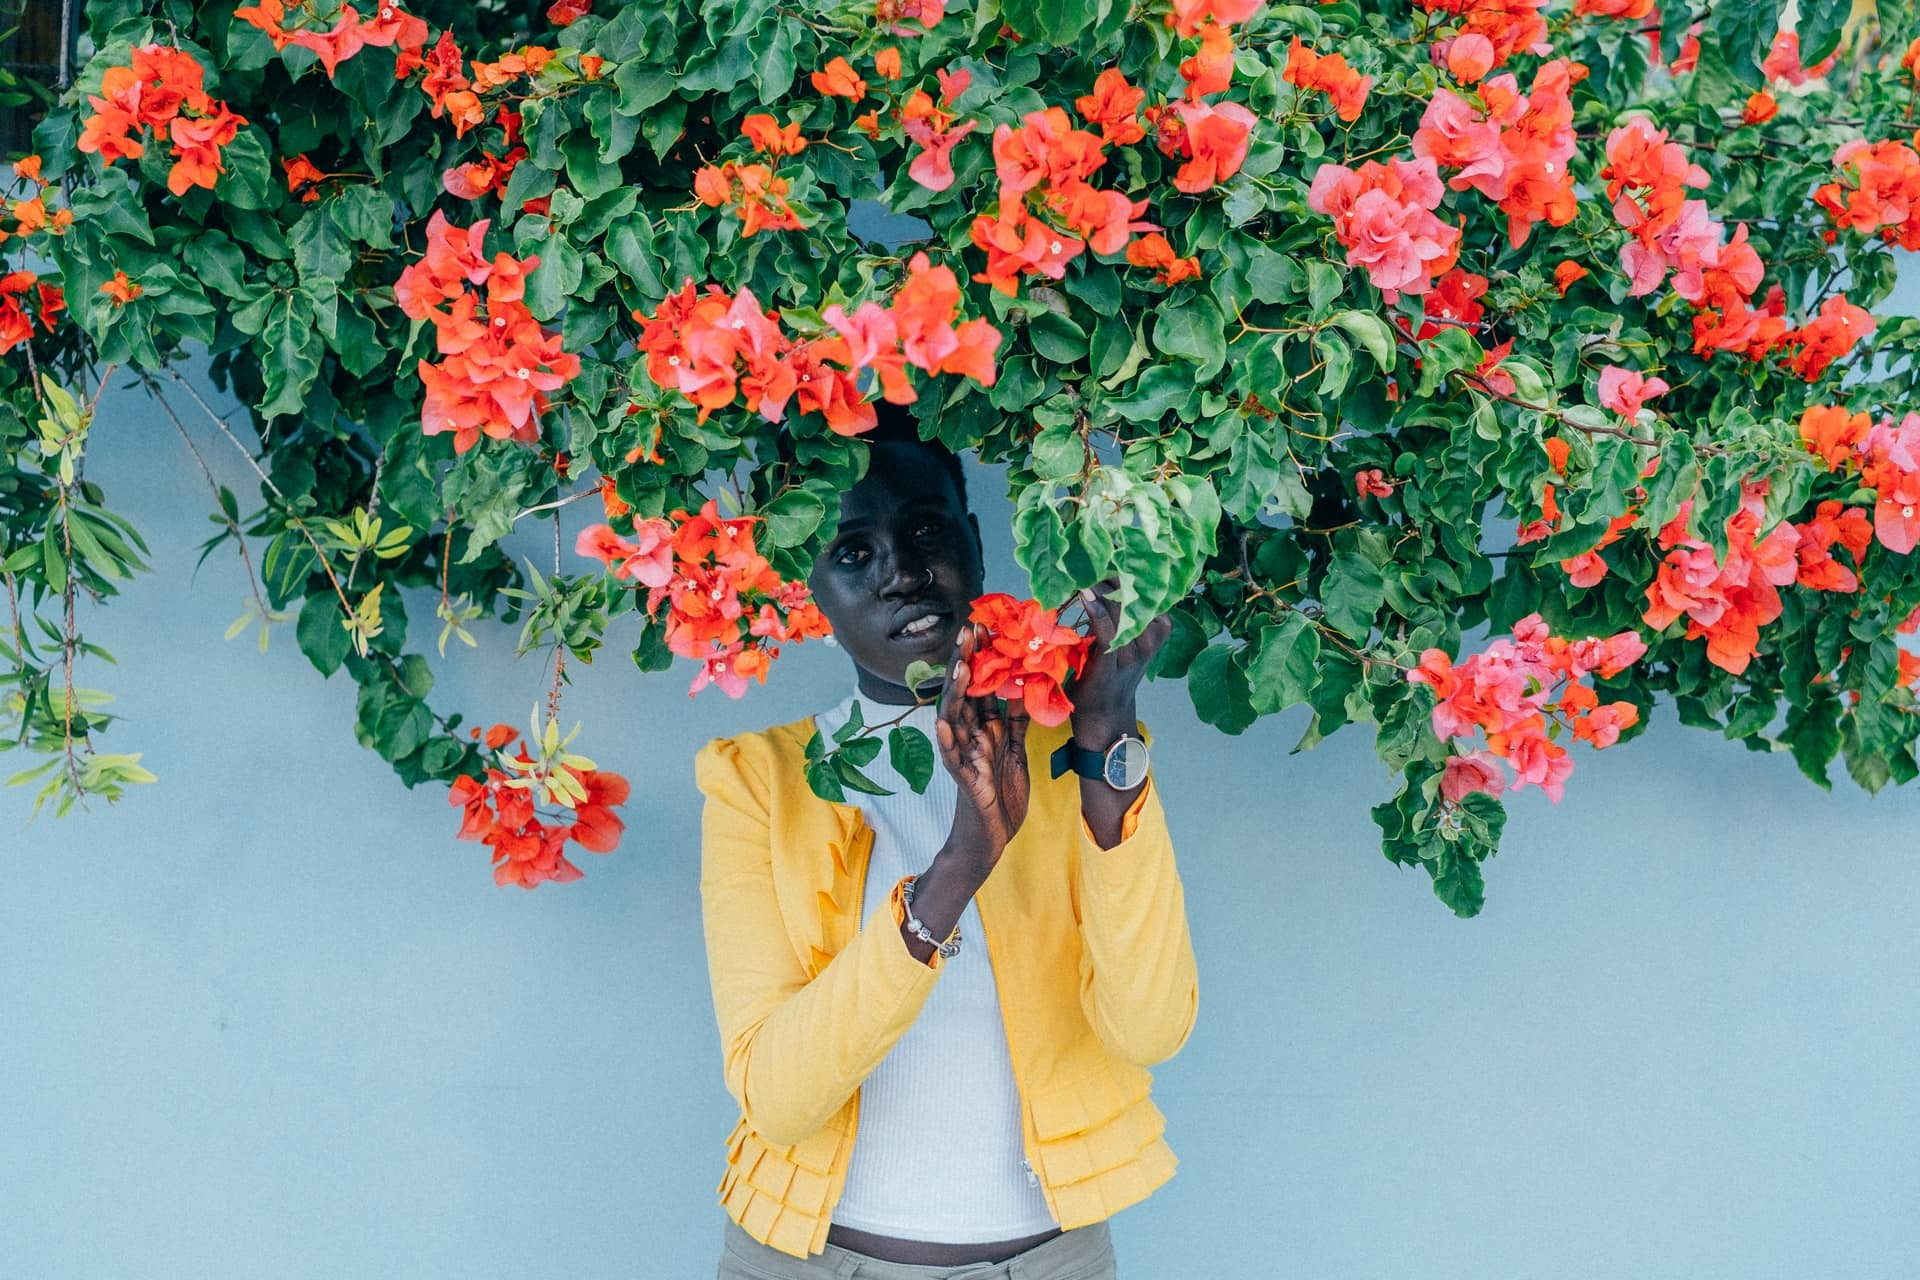 Black woman in yellow coat poses under a blossoming bush.